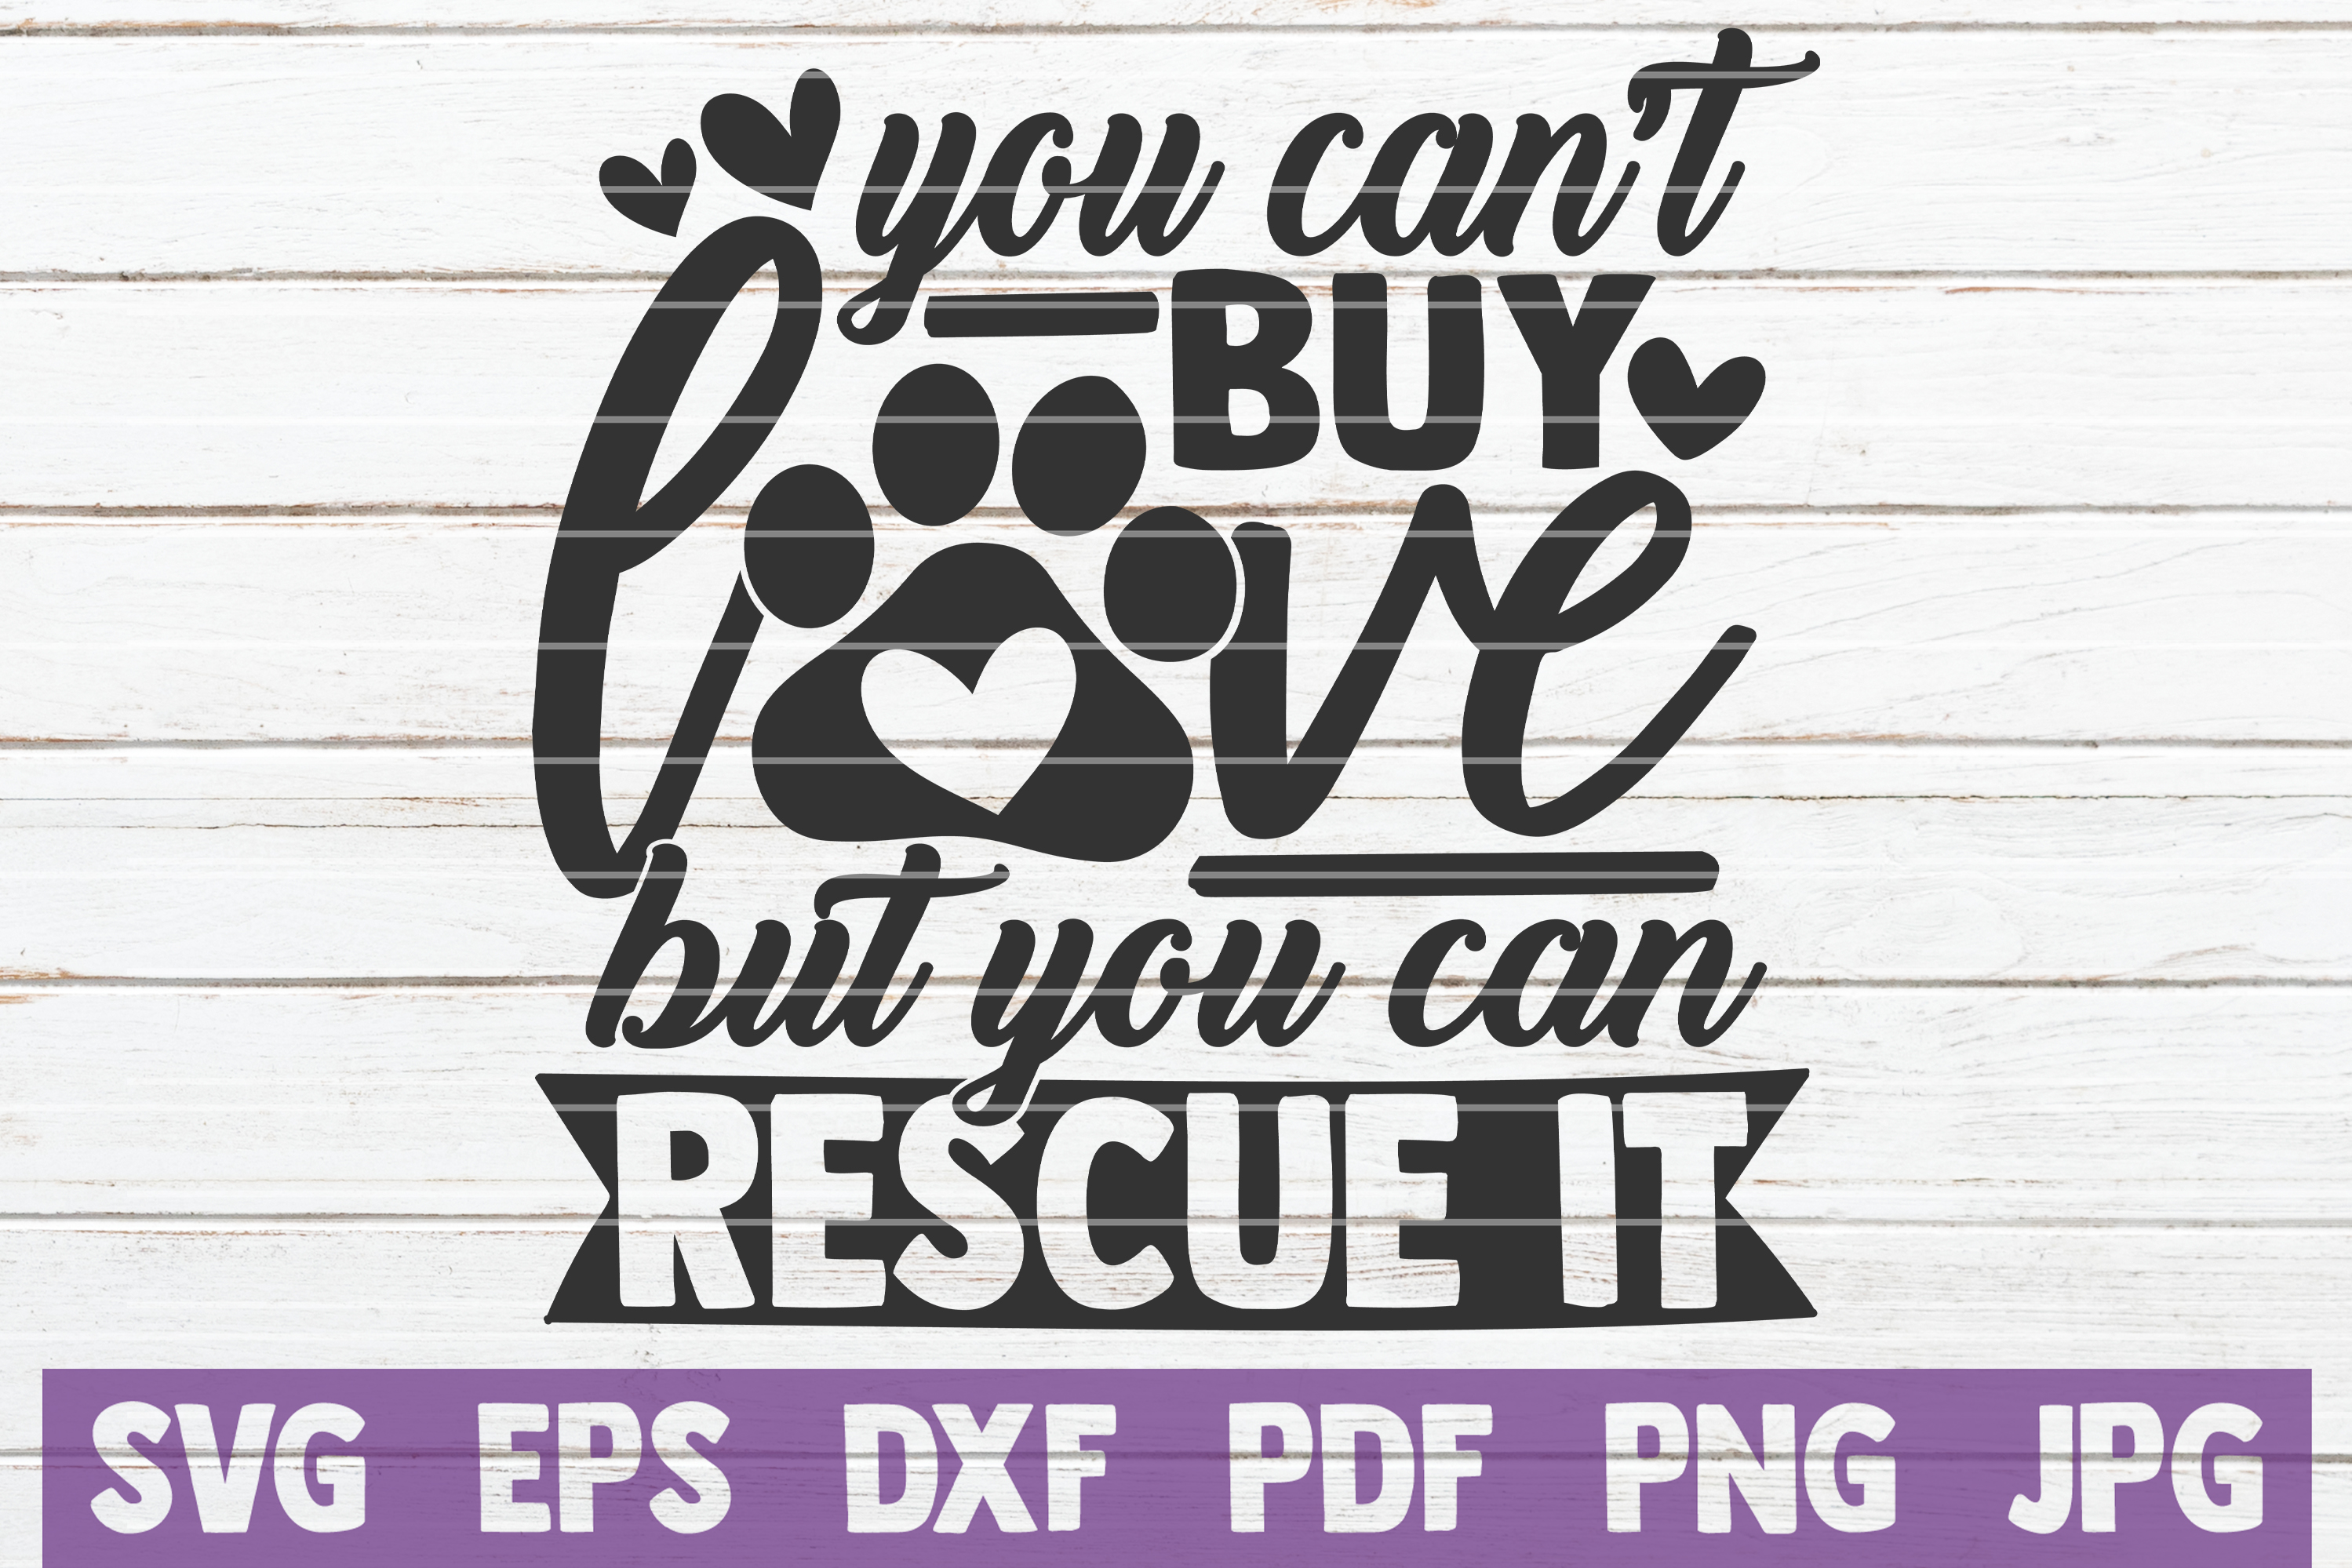 You Can't Buy Love But You Can Rescue It SVG Cut File example image 1